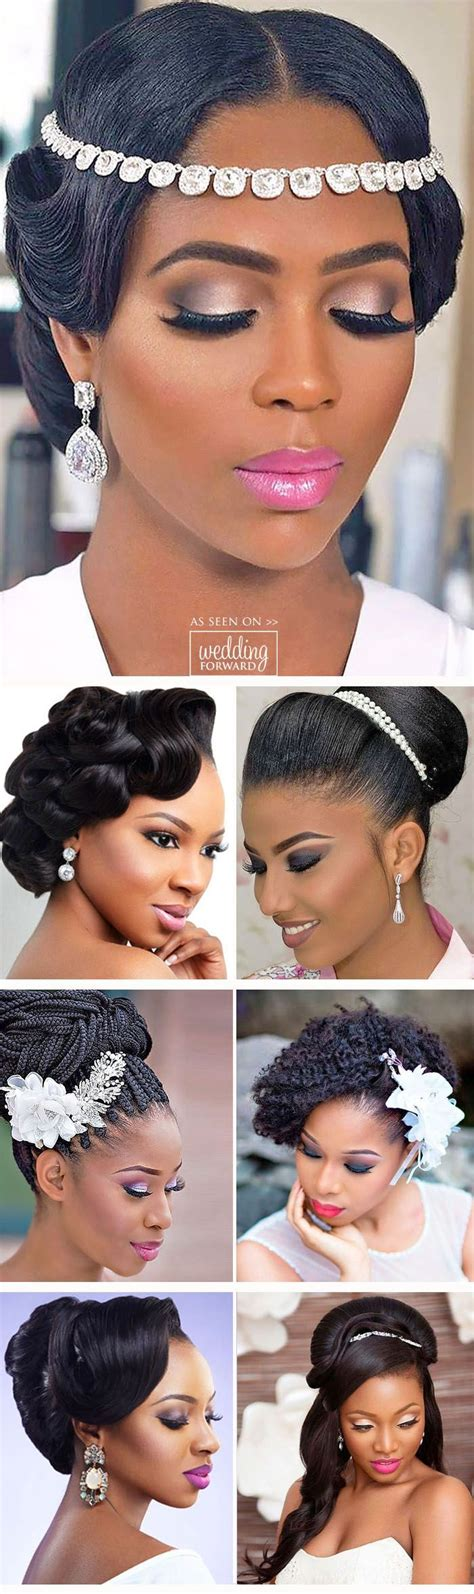 hair styles 25 unique black hairstyles ideas on 7197